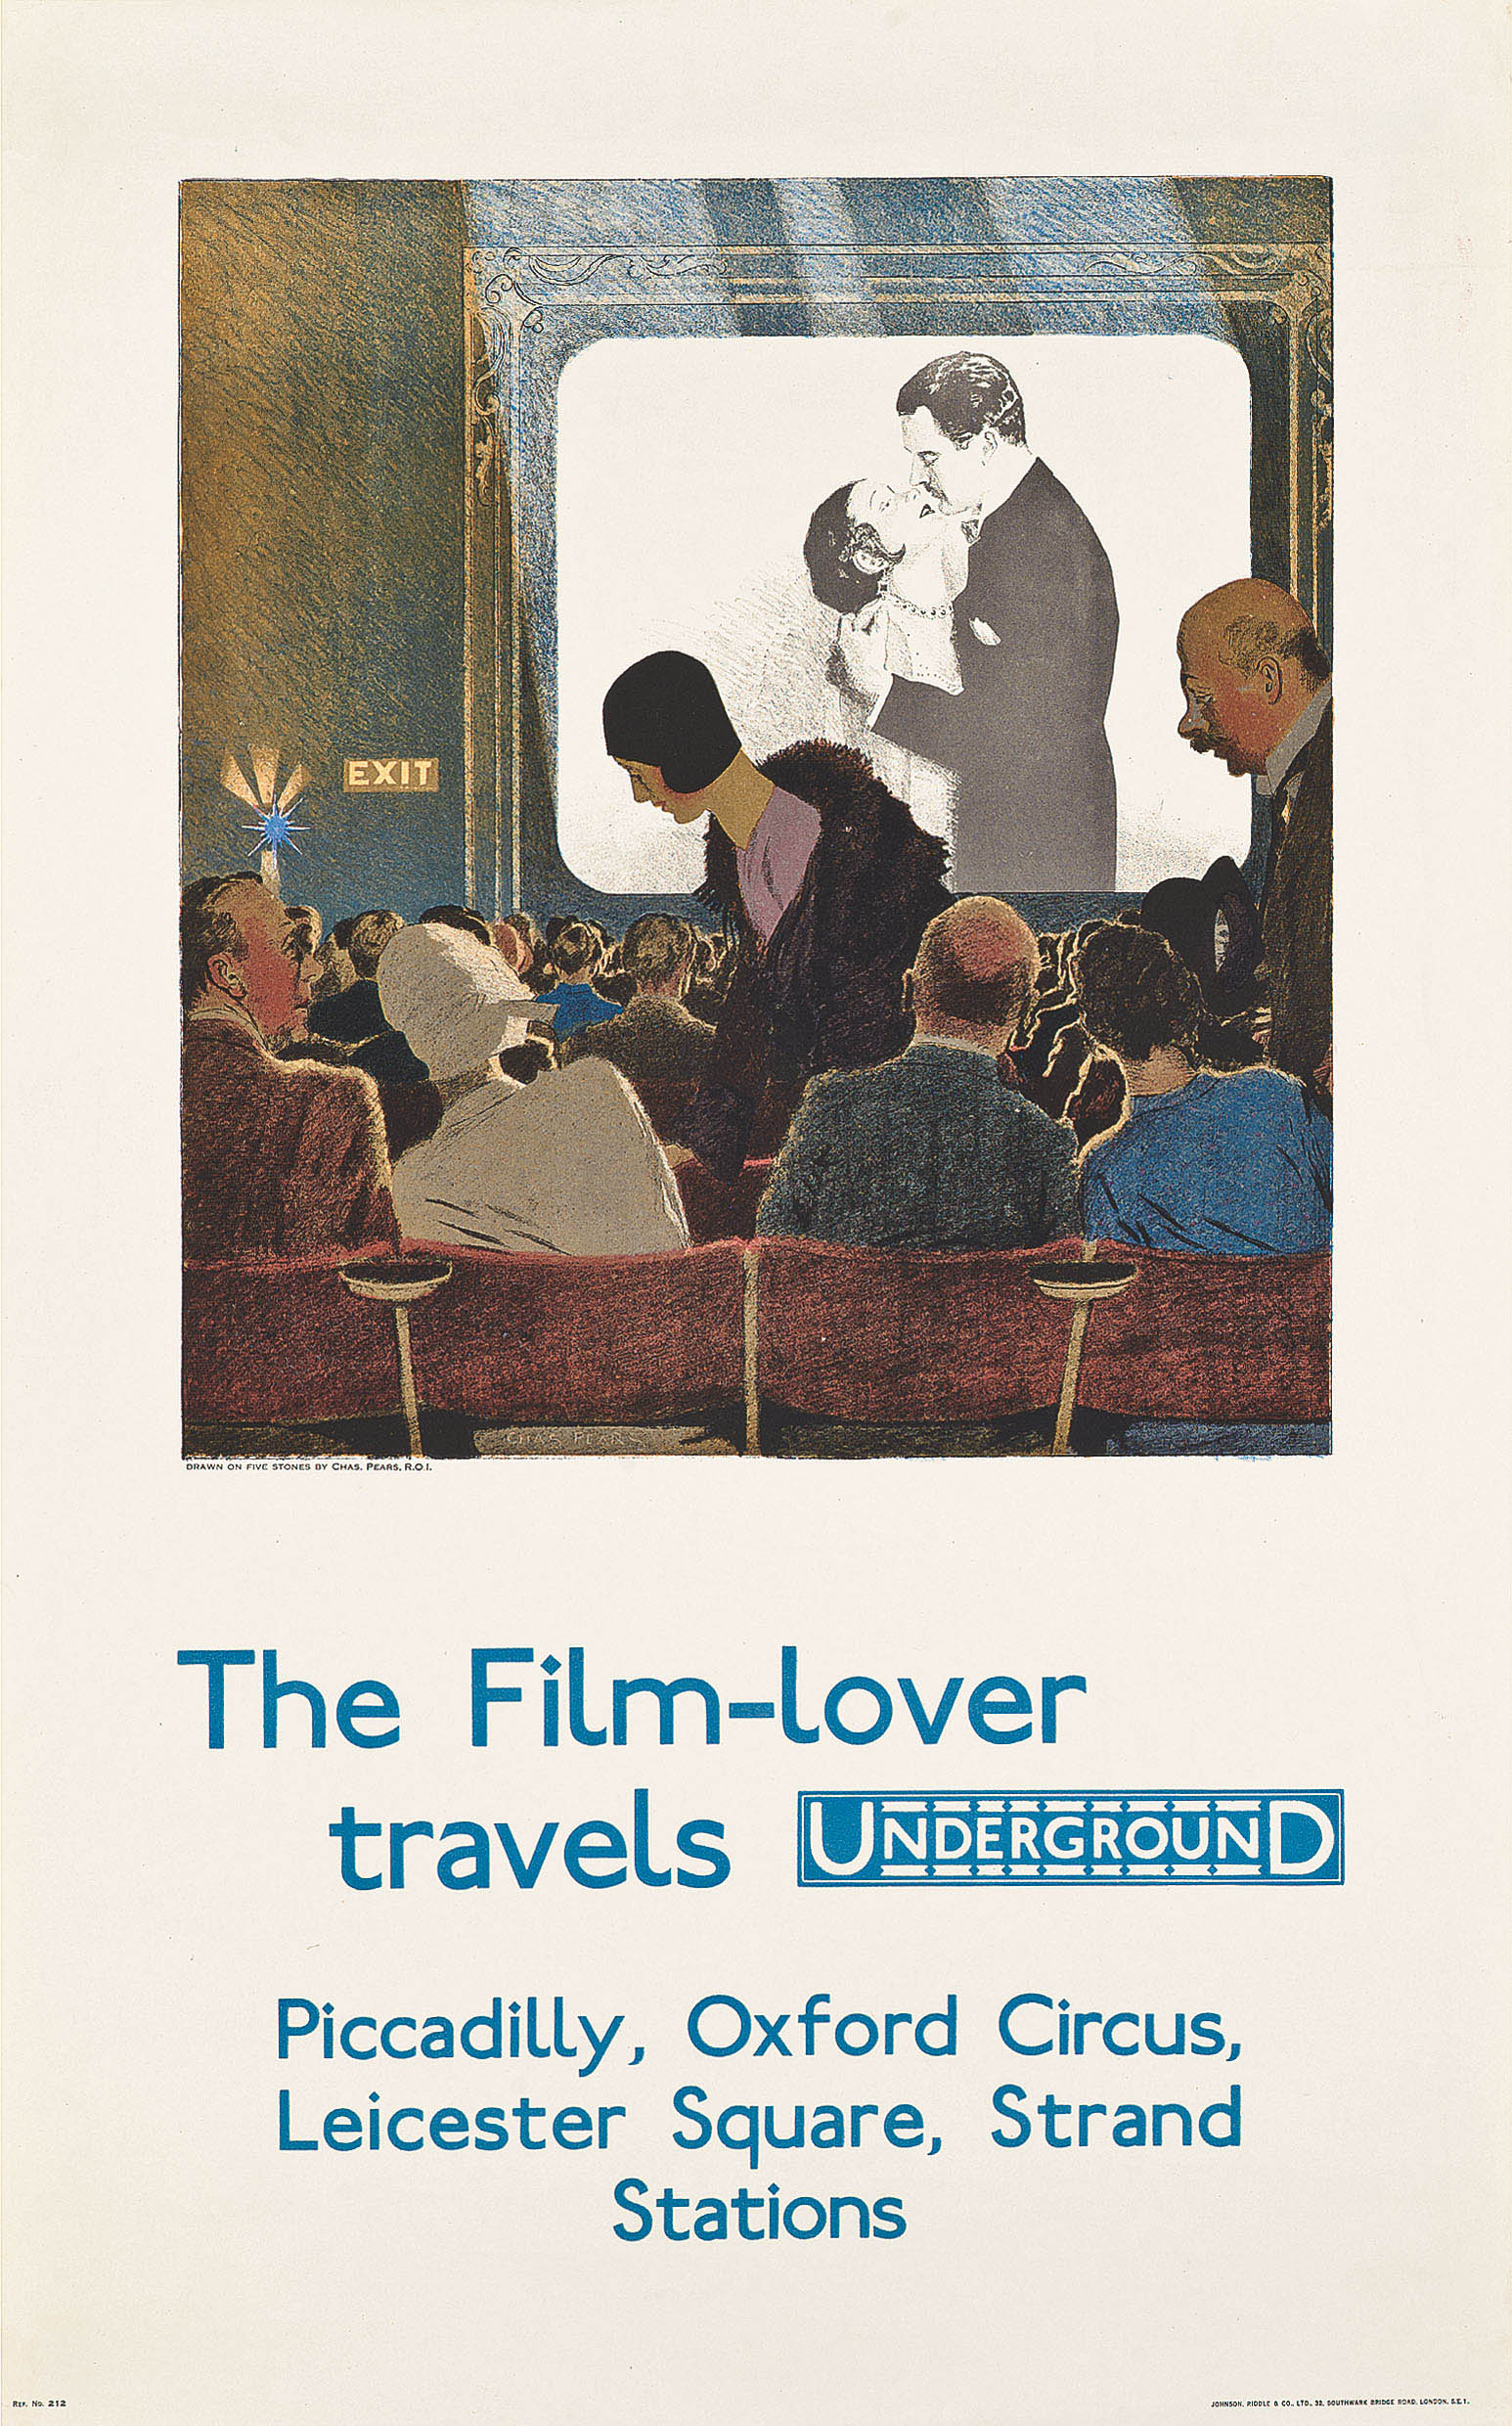 THE FILM-LOVER TRAVELS UNDERGROUND